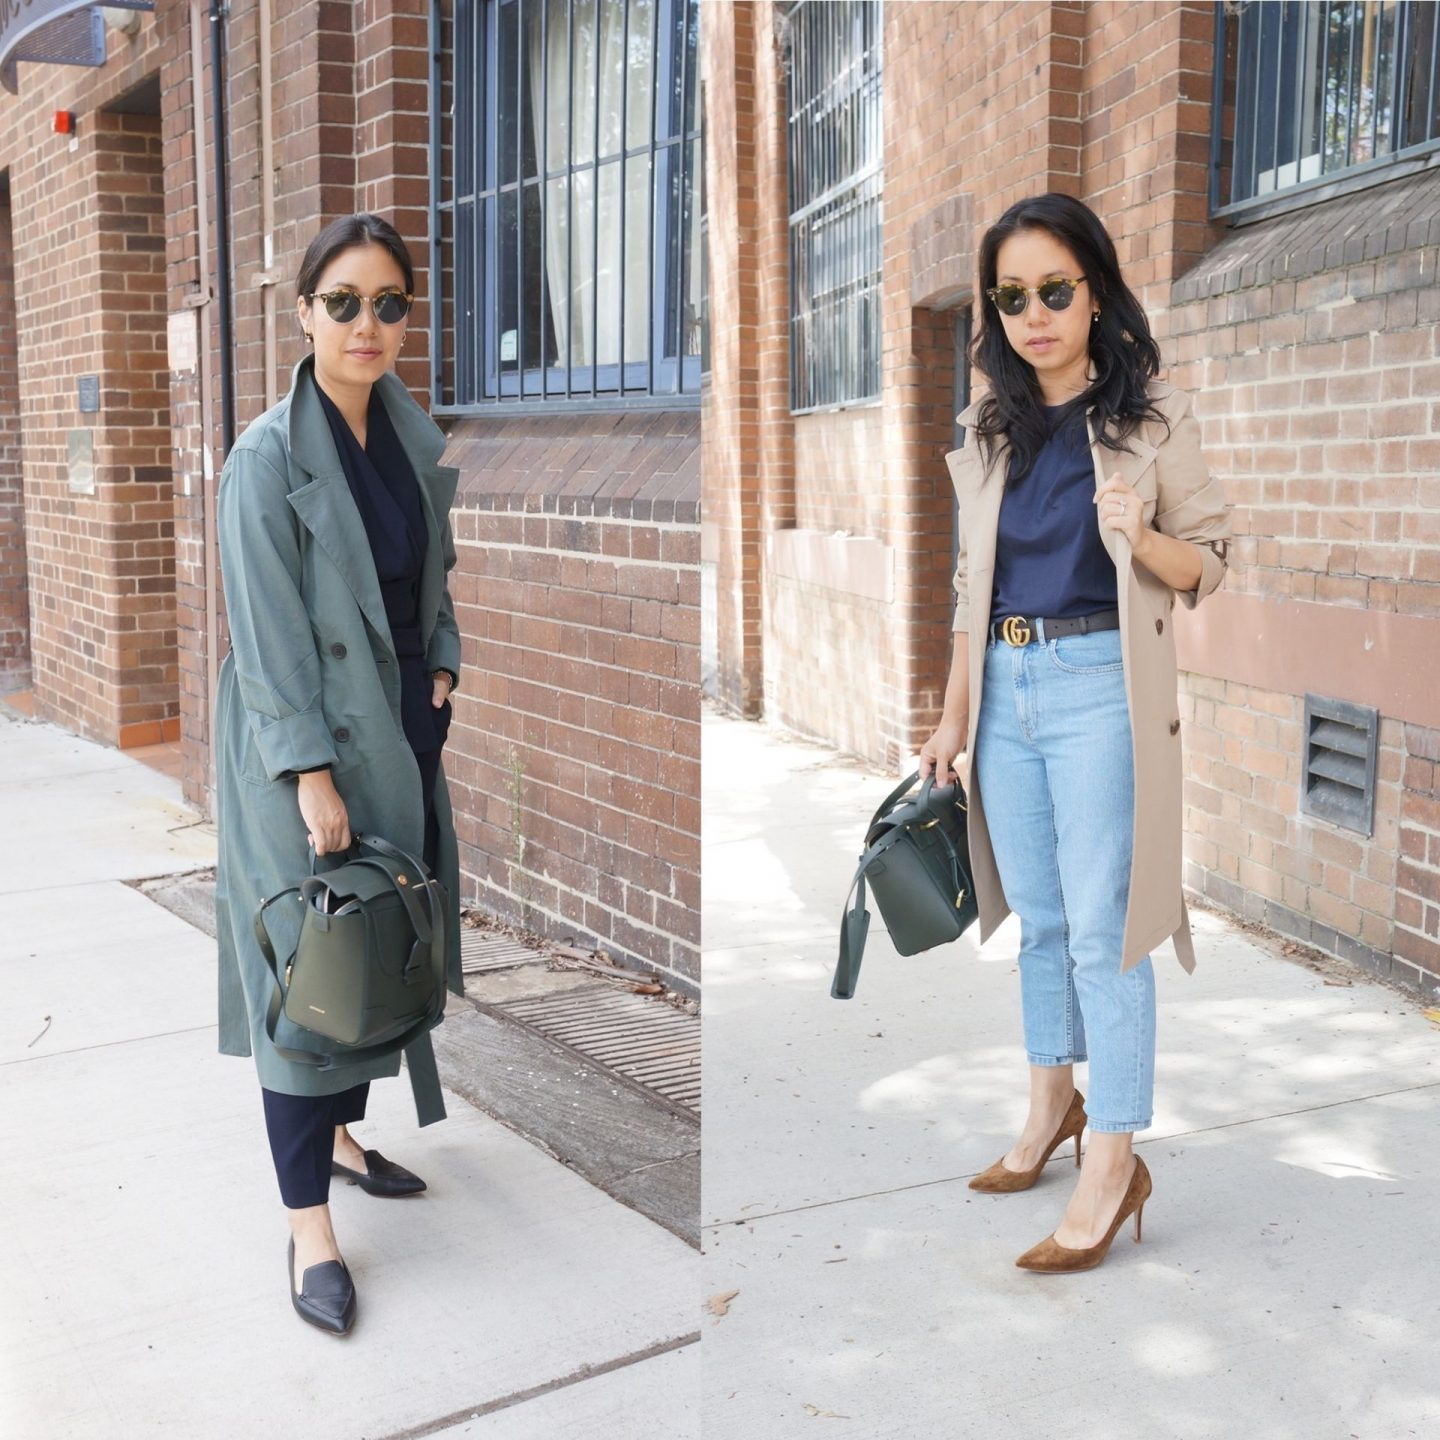 woman wearing outfits for work featuring the fold london and everlane in blog post about senreve mini maestra bag